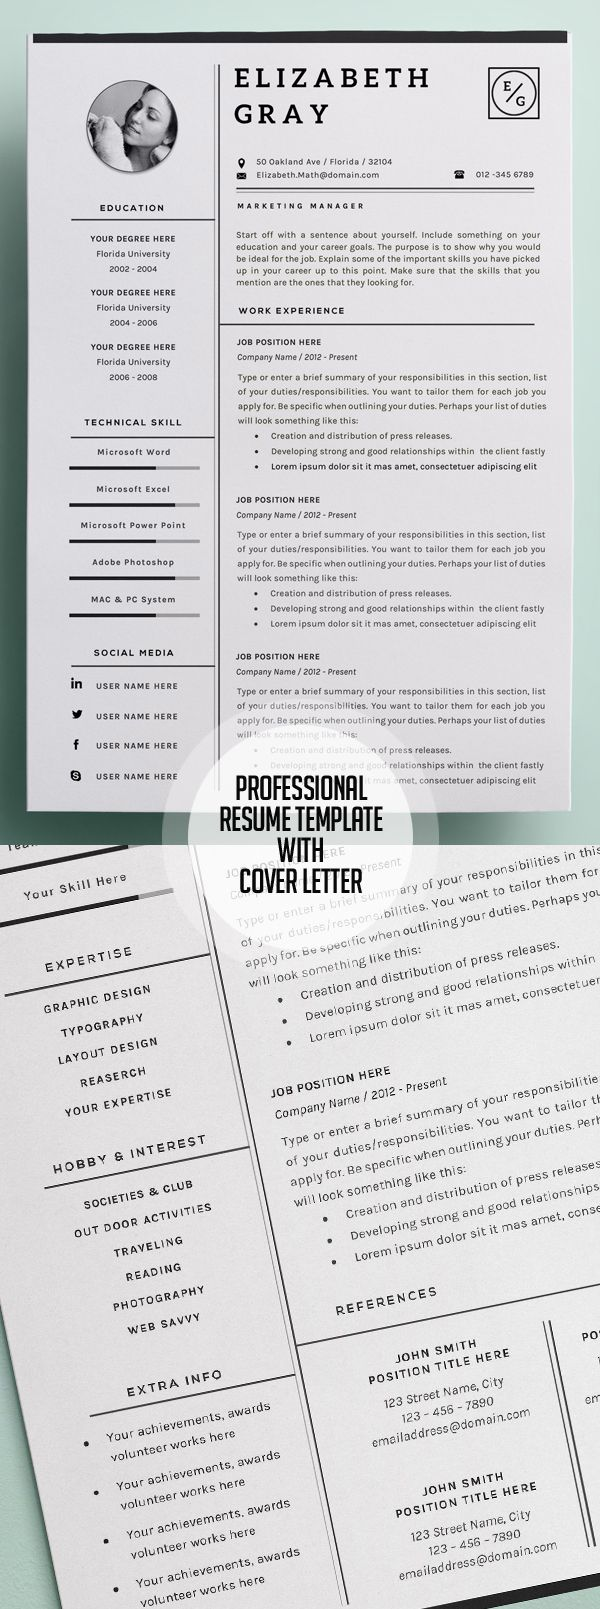 Picnictoimpeachus  Inspiring  Resume Ideas On Pinterest  Resume Resume Templates And  With Foxy Professional And Modern Resume Template With Page Cover Cvtemplate With Charming Creative Resume Examples Also Slp Resume In Addition Small Business Owner Resume And Resume Tutorial As Well As Audio Engineer Resume Additionally Retail Experience Resume From Pinterestcom With Picnictoimpeachus  Foxy  Resume Ideas On Pinterest  Resume Resume Templates And  With Charming Professional And Modern Resume Template With Page Cover Cvtemplate And Inspiring Creative Resume Examples Also Slp Resume In Addition Small Business Owner Resume From Pinterestcom